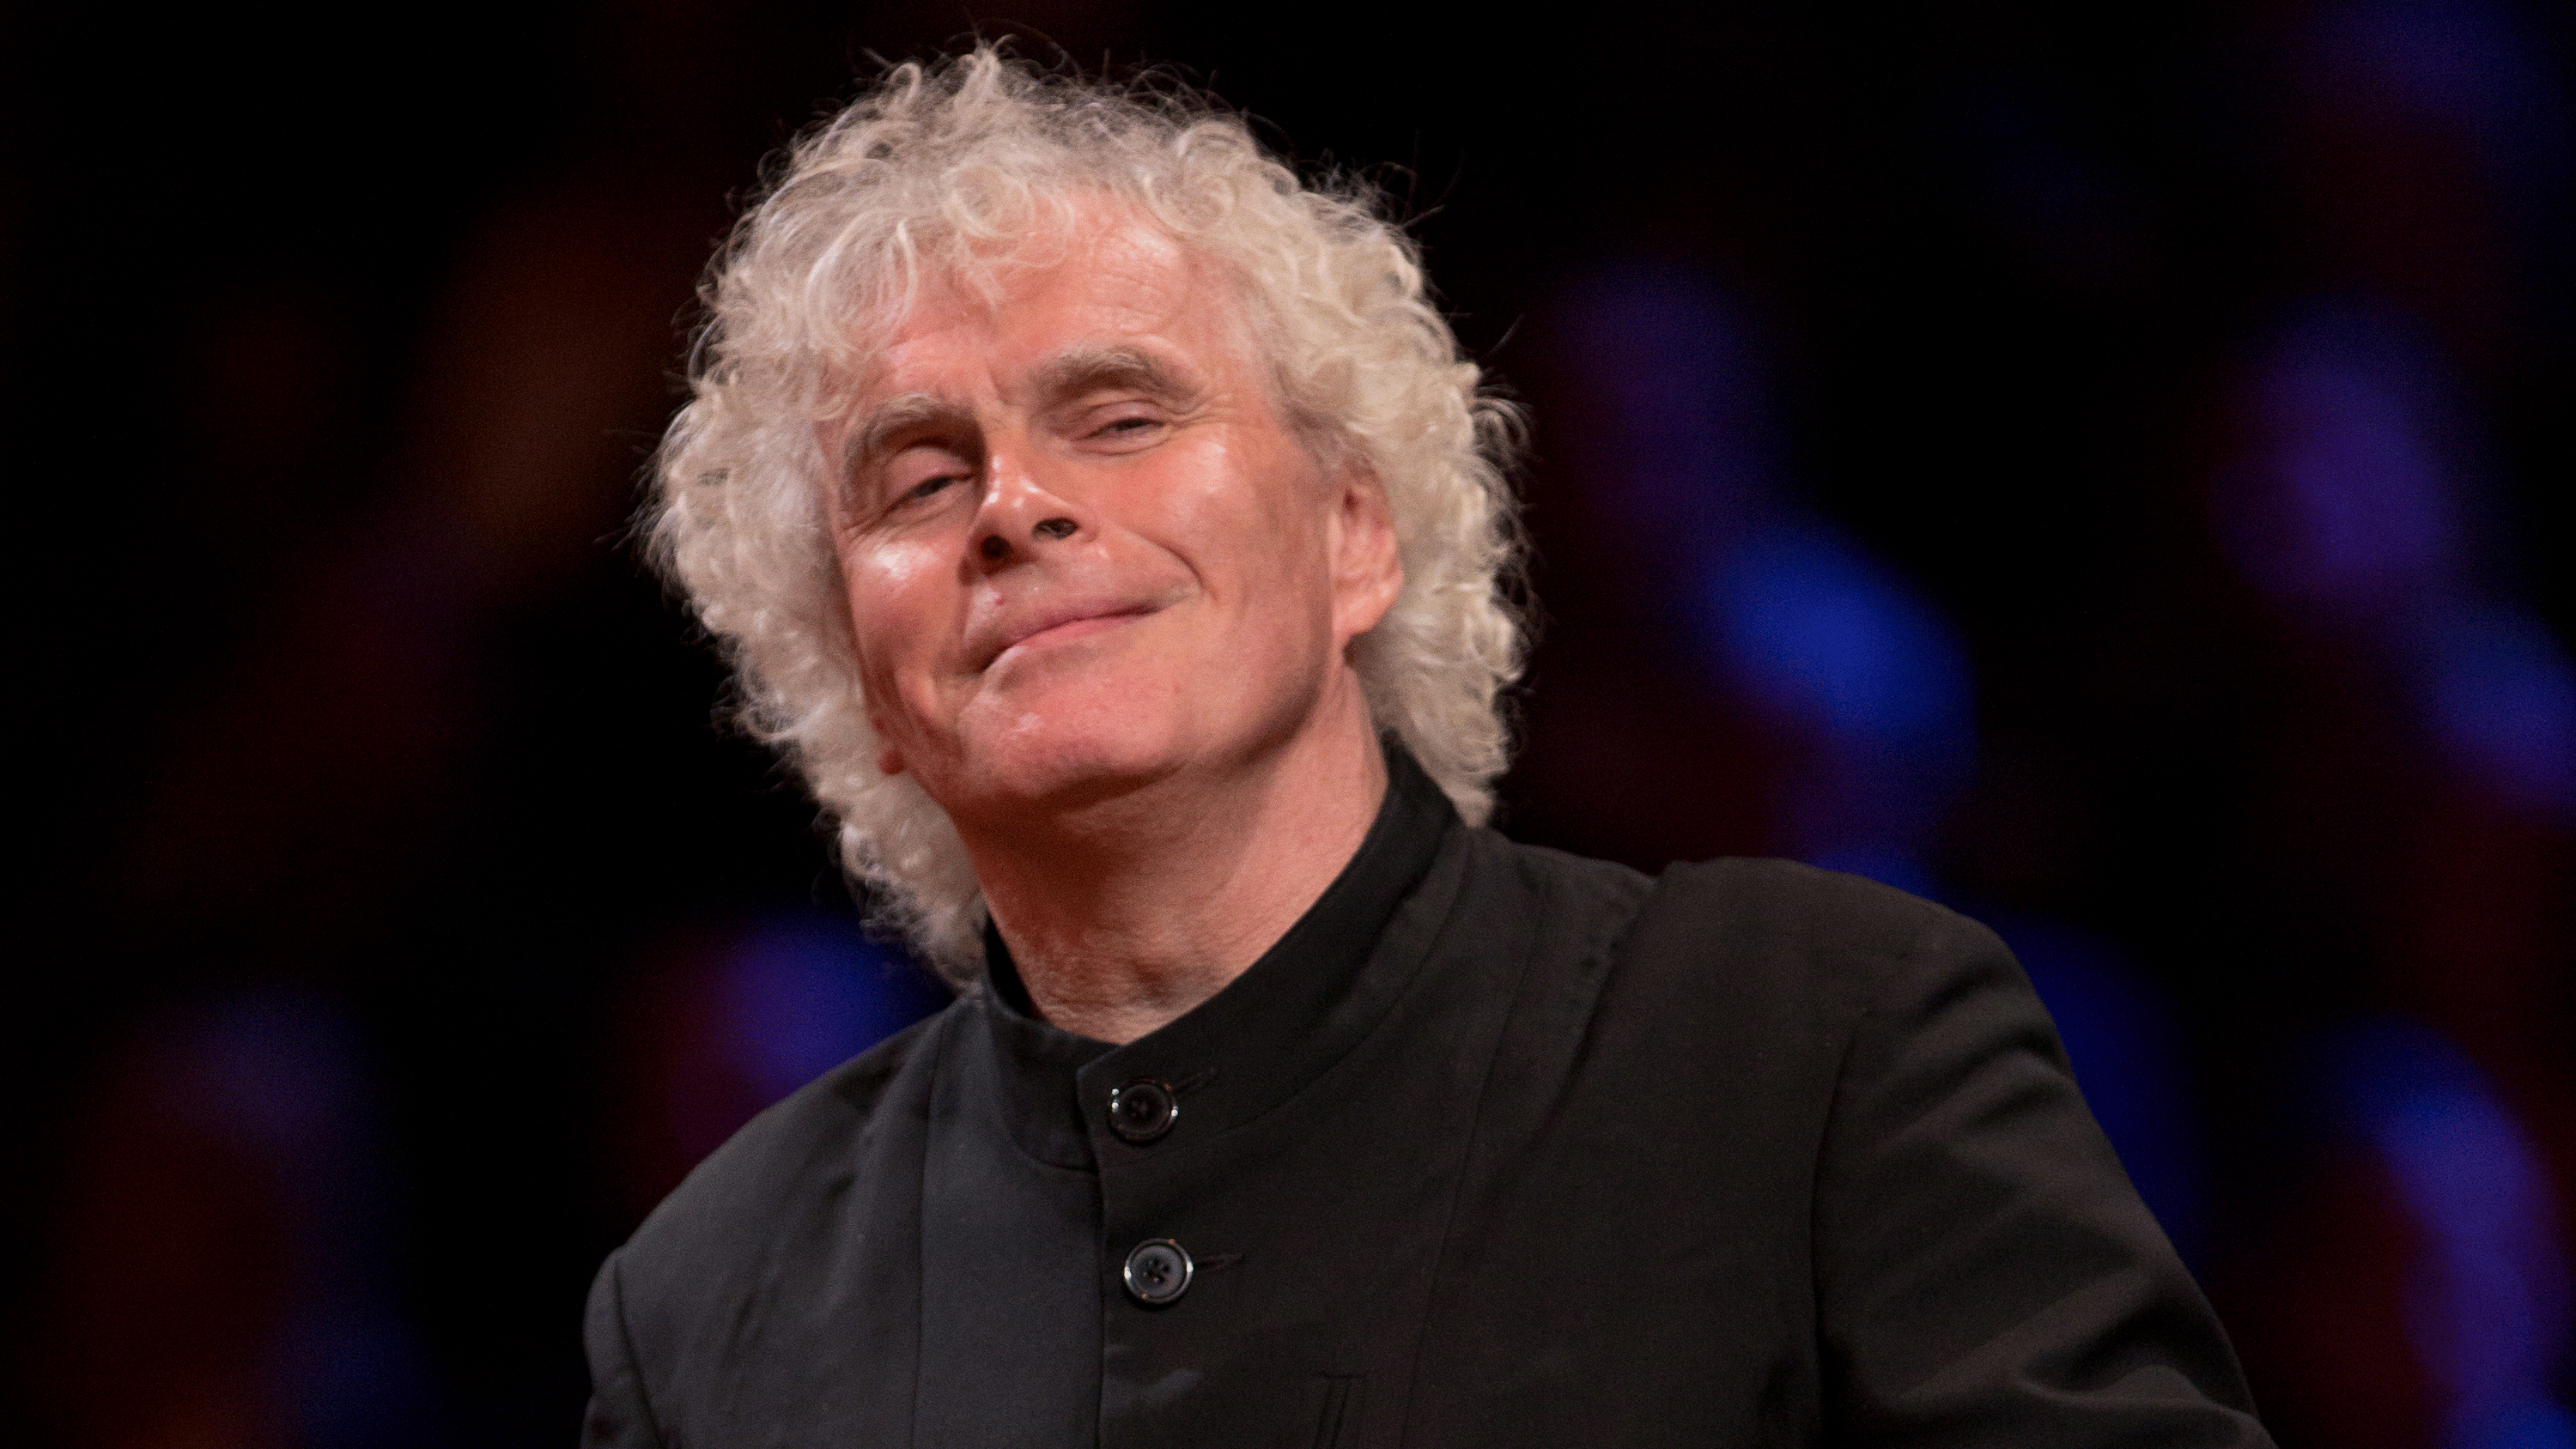 Sir Simon Rattle conducts Dvořák, Hindemith, Khachaturian, and Brahms